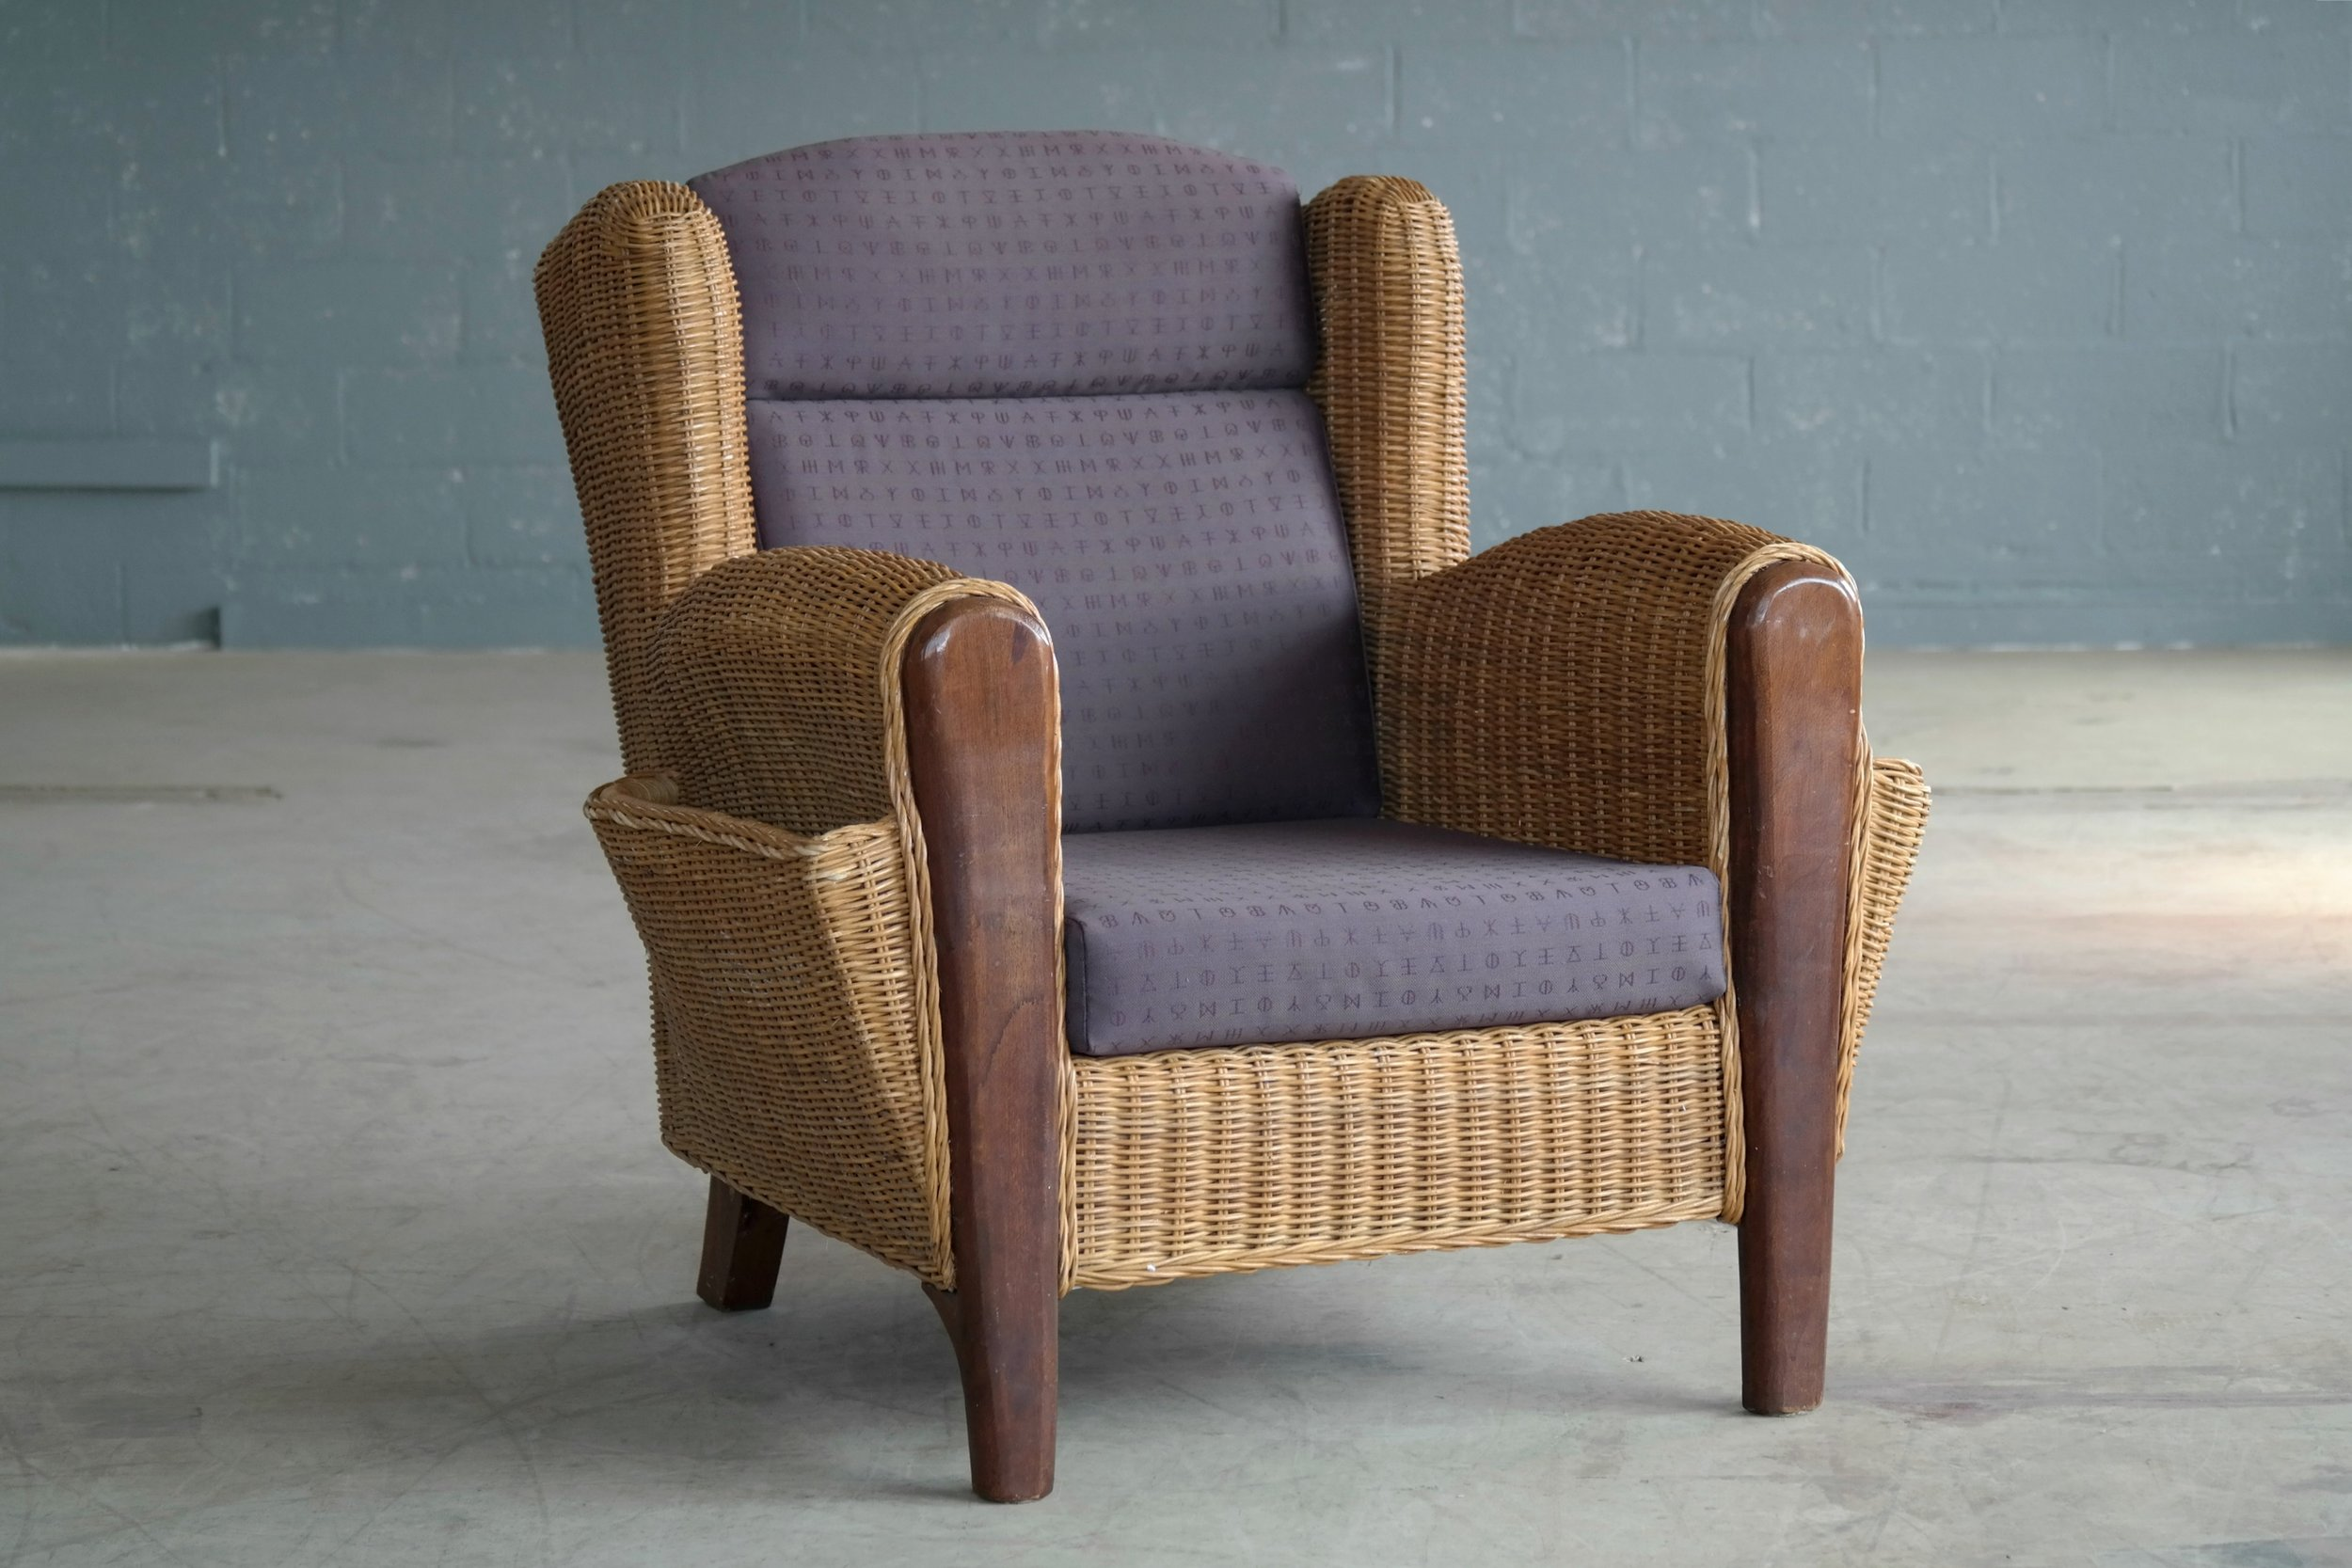 Danish Mid-Century Wicker Lounge Chair with Magazine Pockets